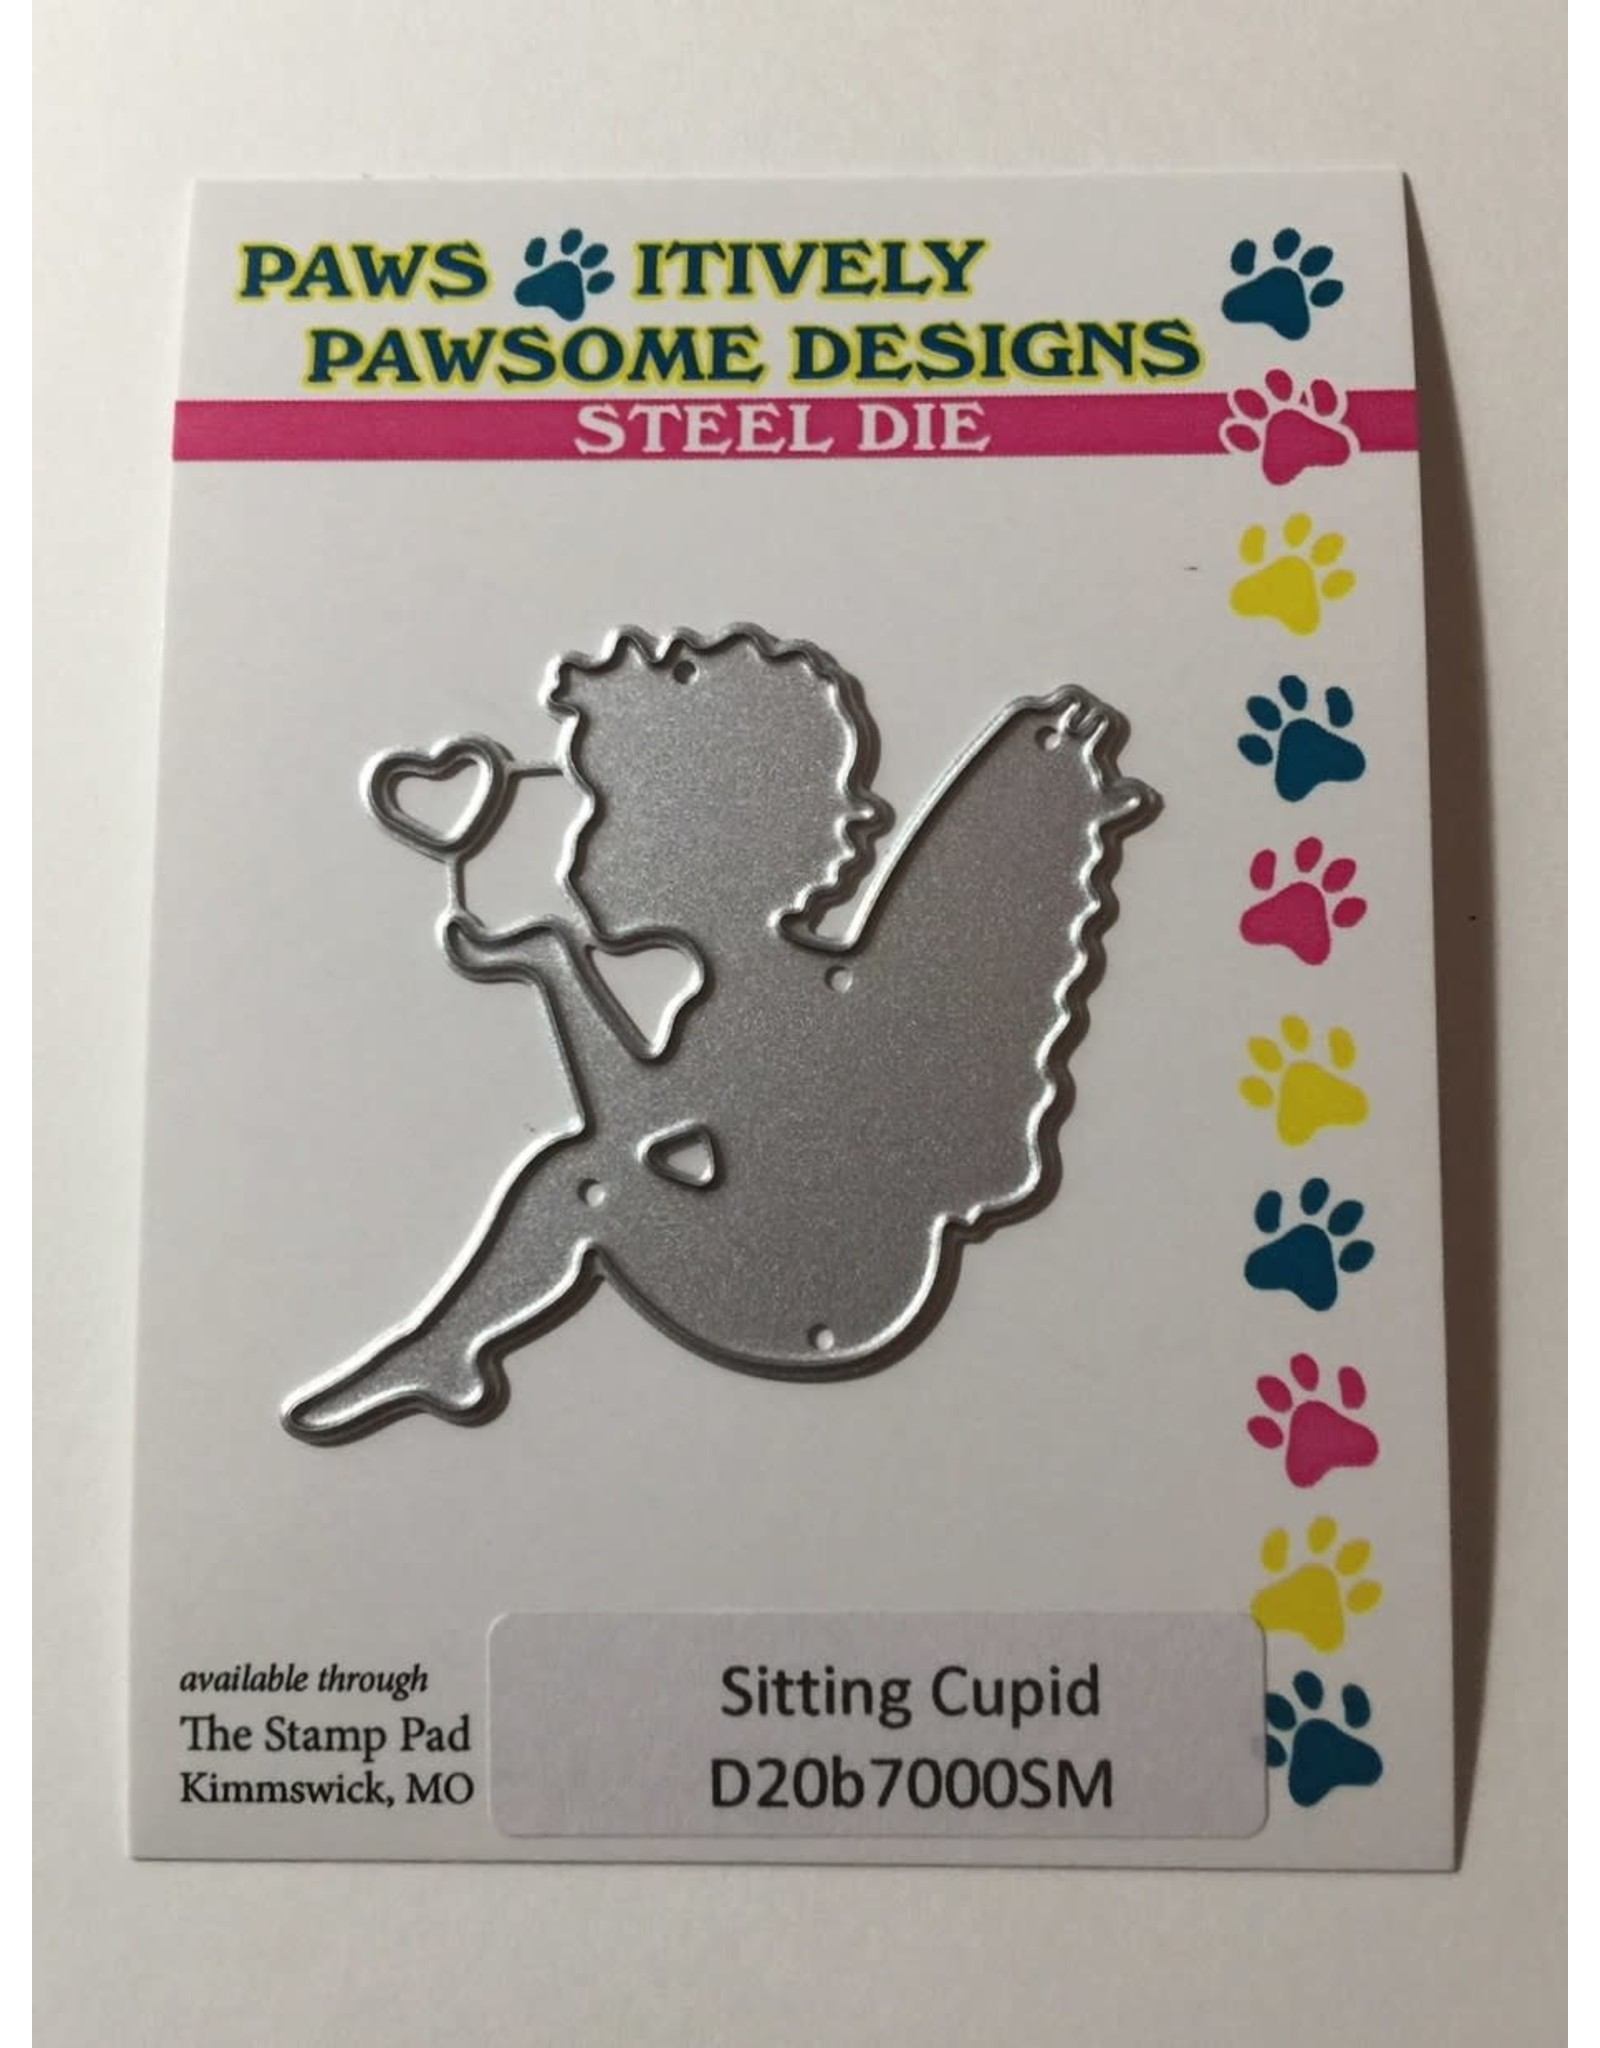 Paws-Itively Pawsome Designs Sitting Cupid Die